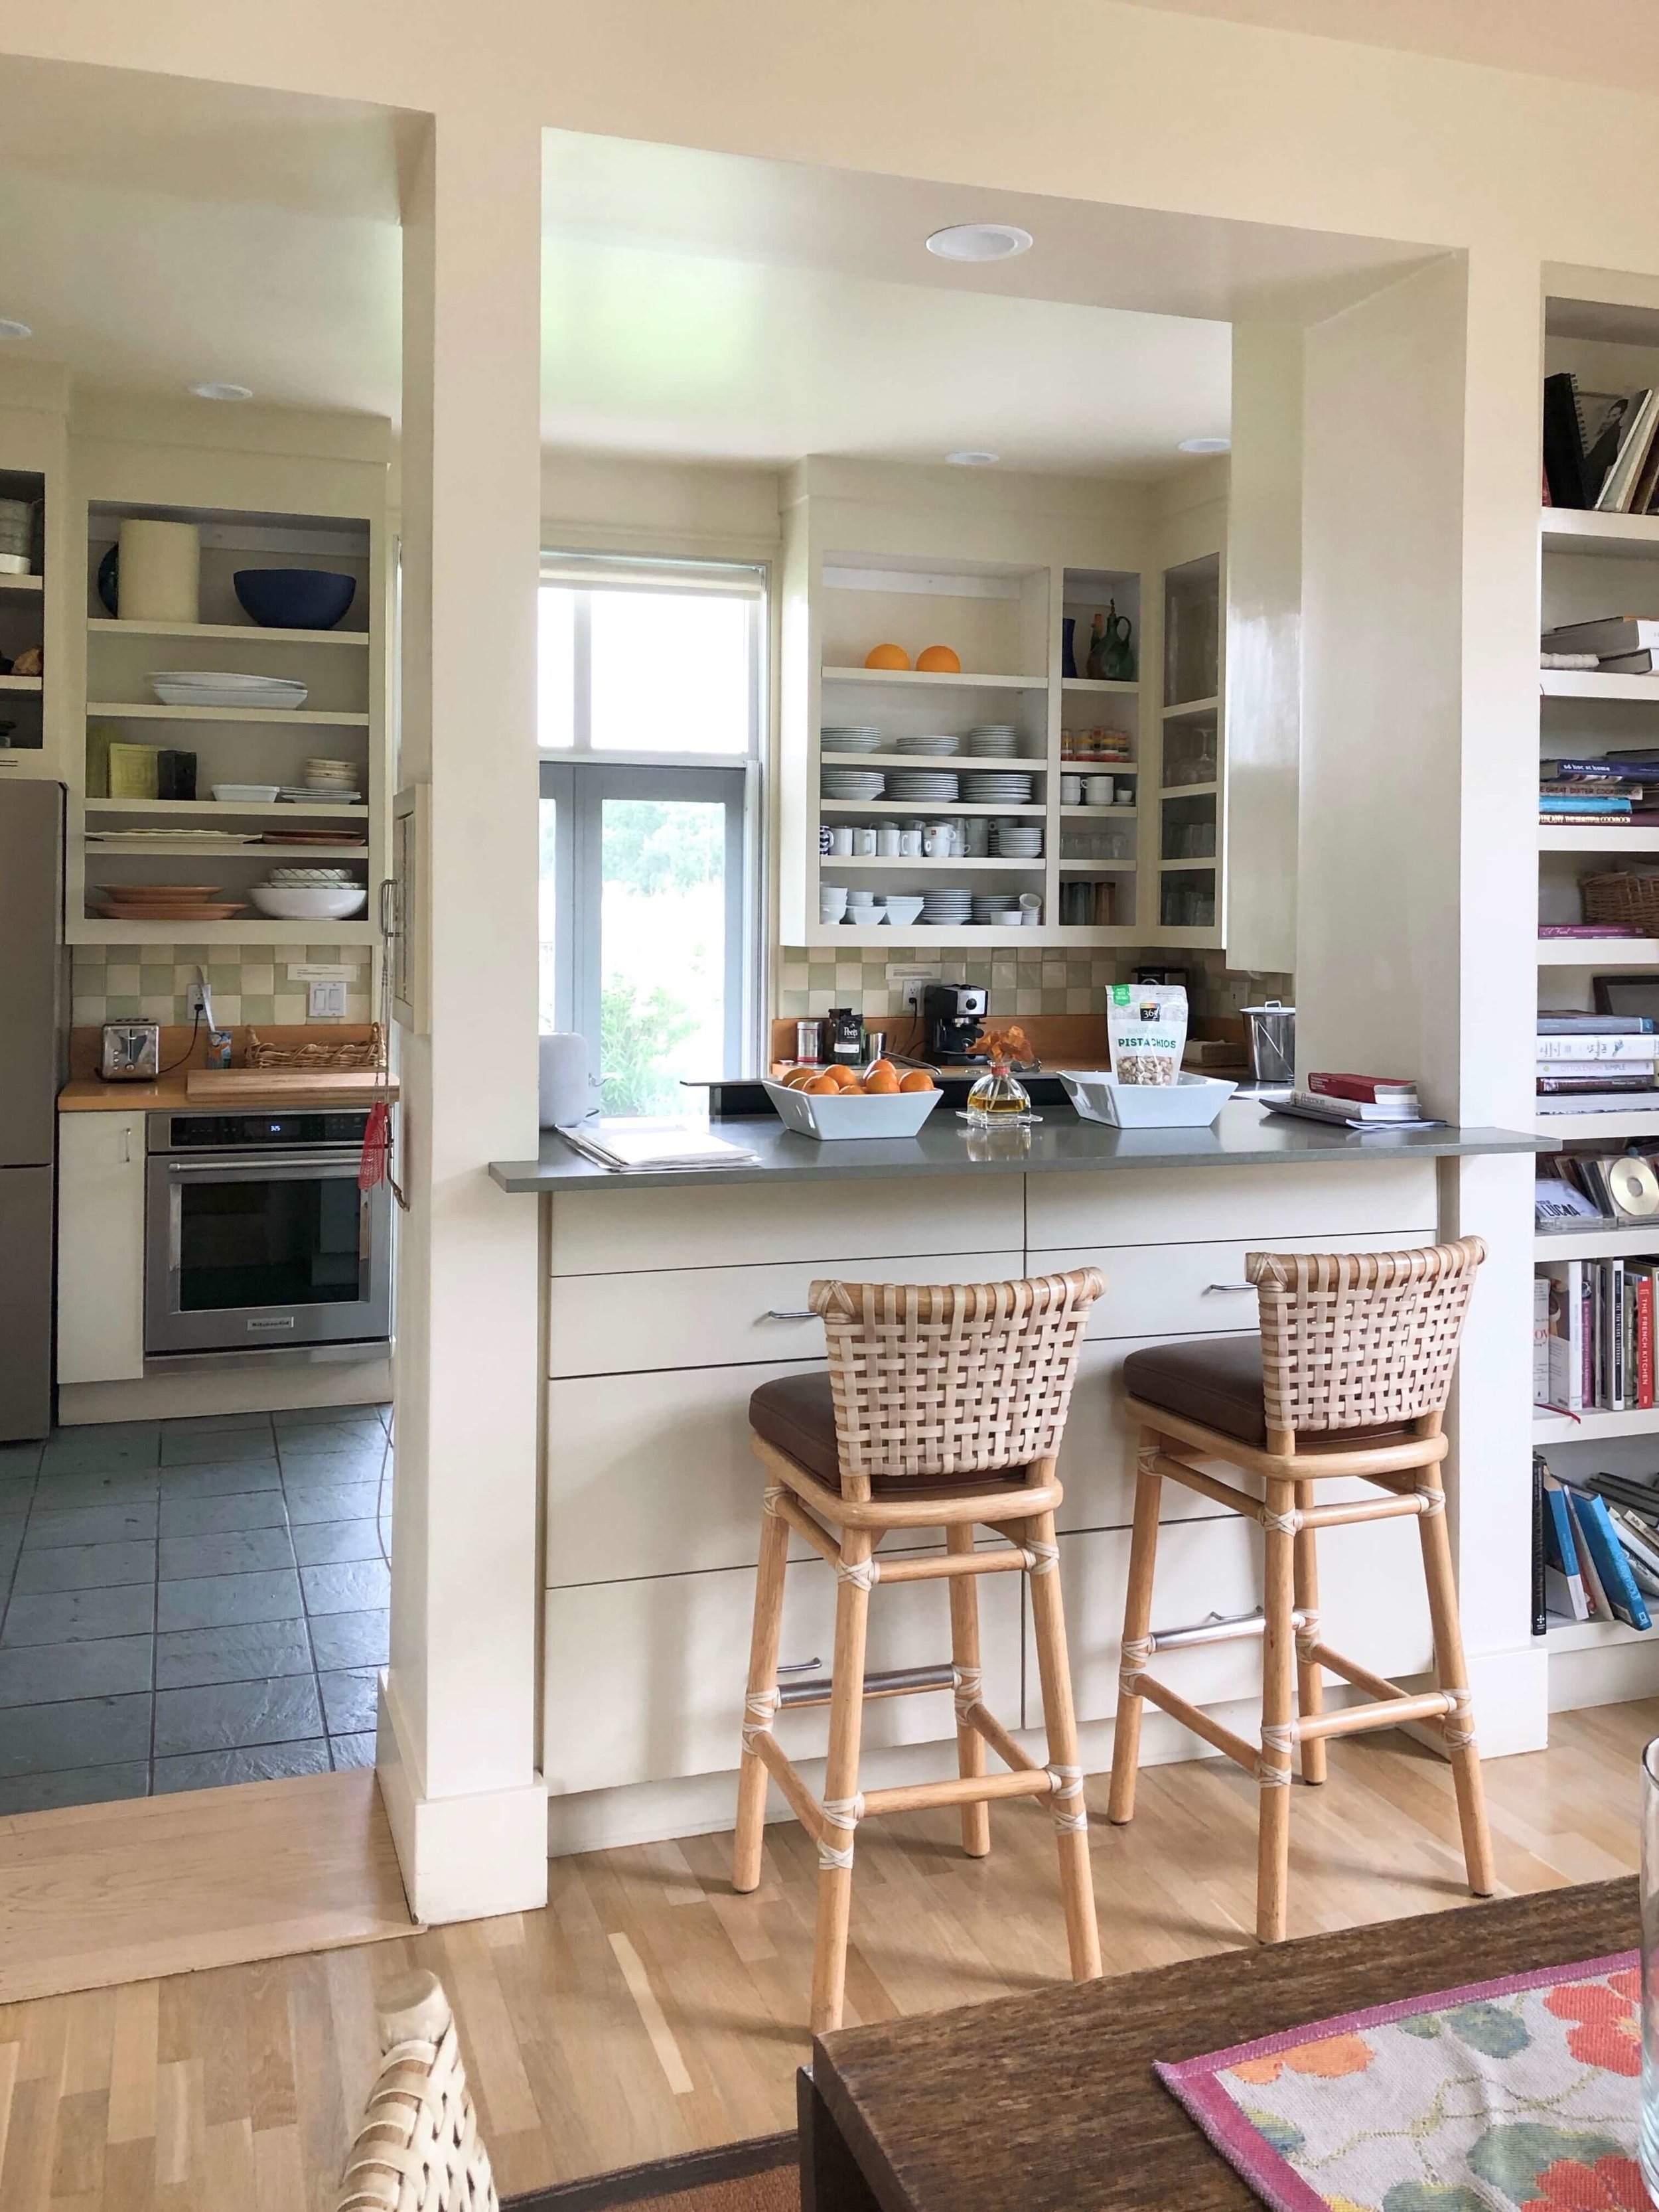 Peering from the dining room to the kitchen over the bar at this Sonoma Valley Airbnb. Great appliances, an espresso maker, and quality cookware make this a fab kitchen for cooking some family style meals. #airbnb #winecountry #farmhousekitchen